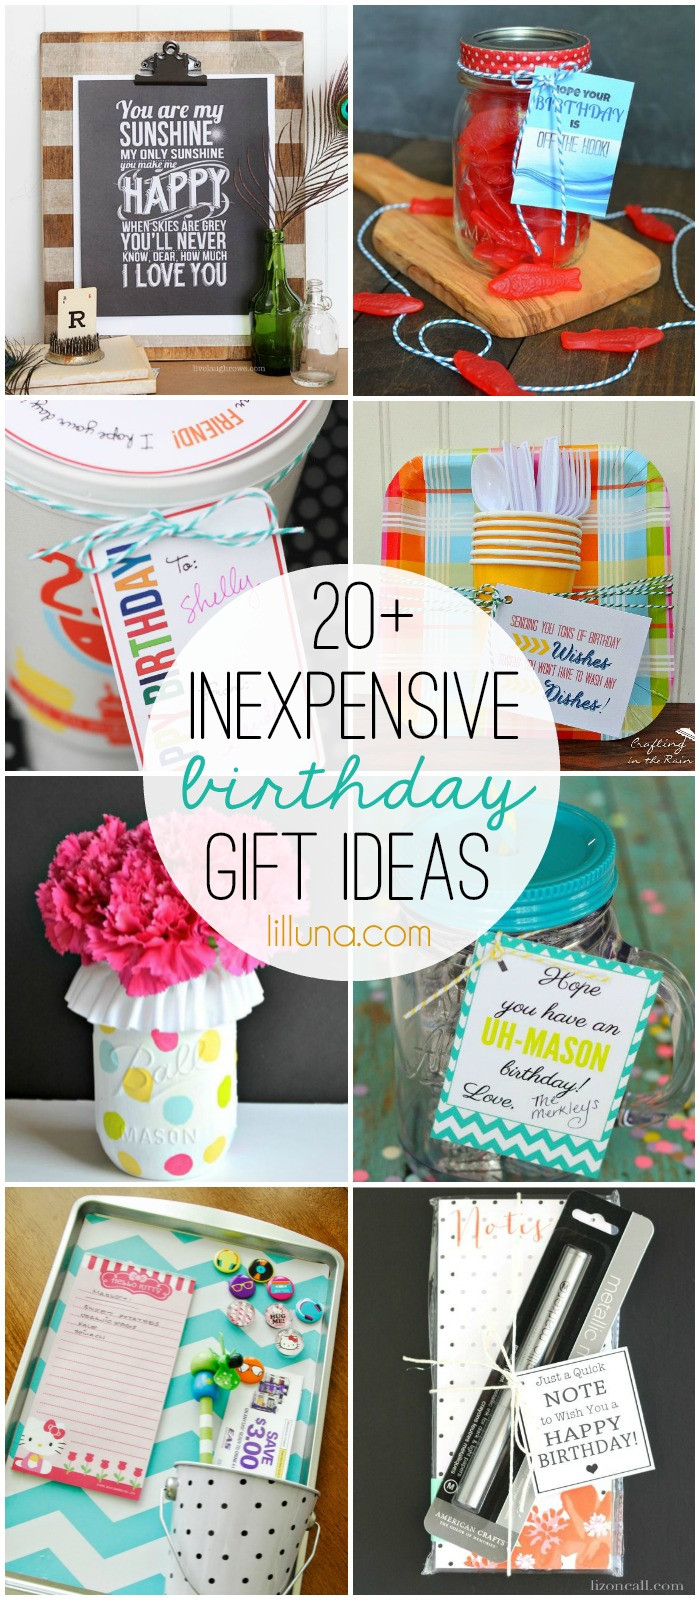 Best ideas about Small Birthday Gift Ideas . Save or Pin Inexpensive Birthday Gift Ideas Now.